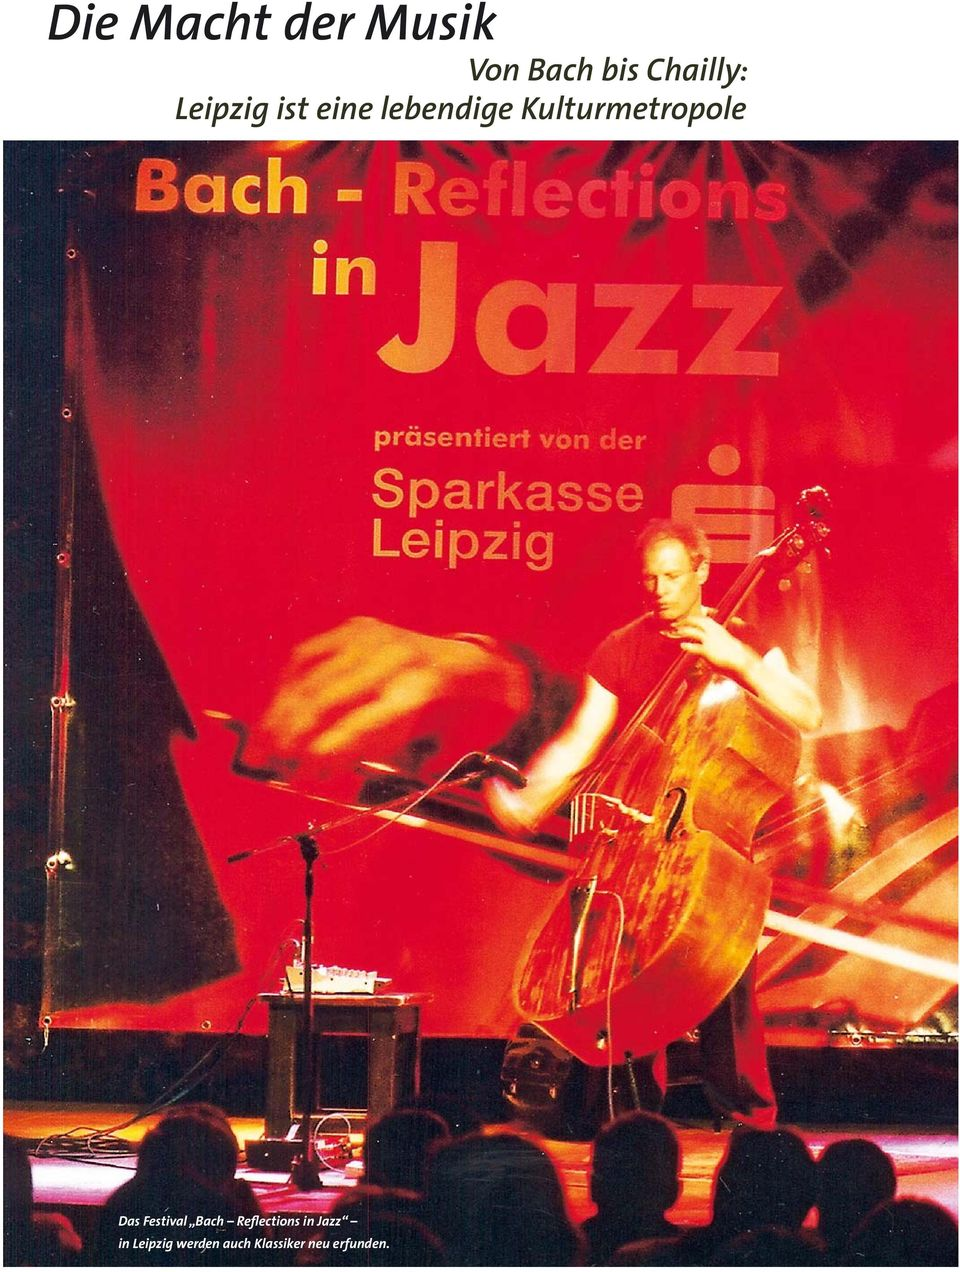 Das Festival Bach Reflections in Jazz in